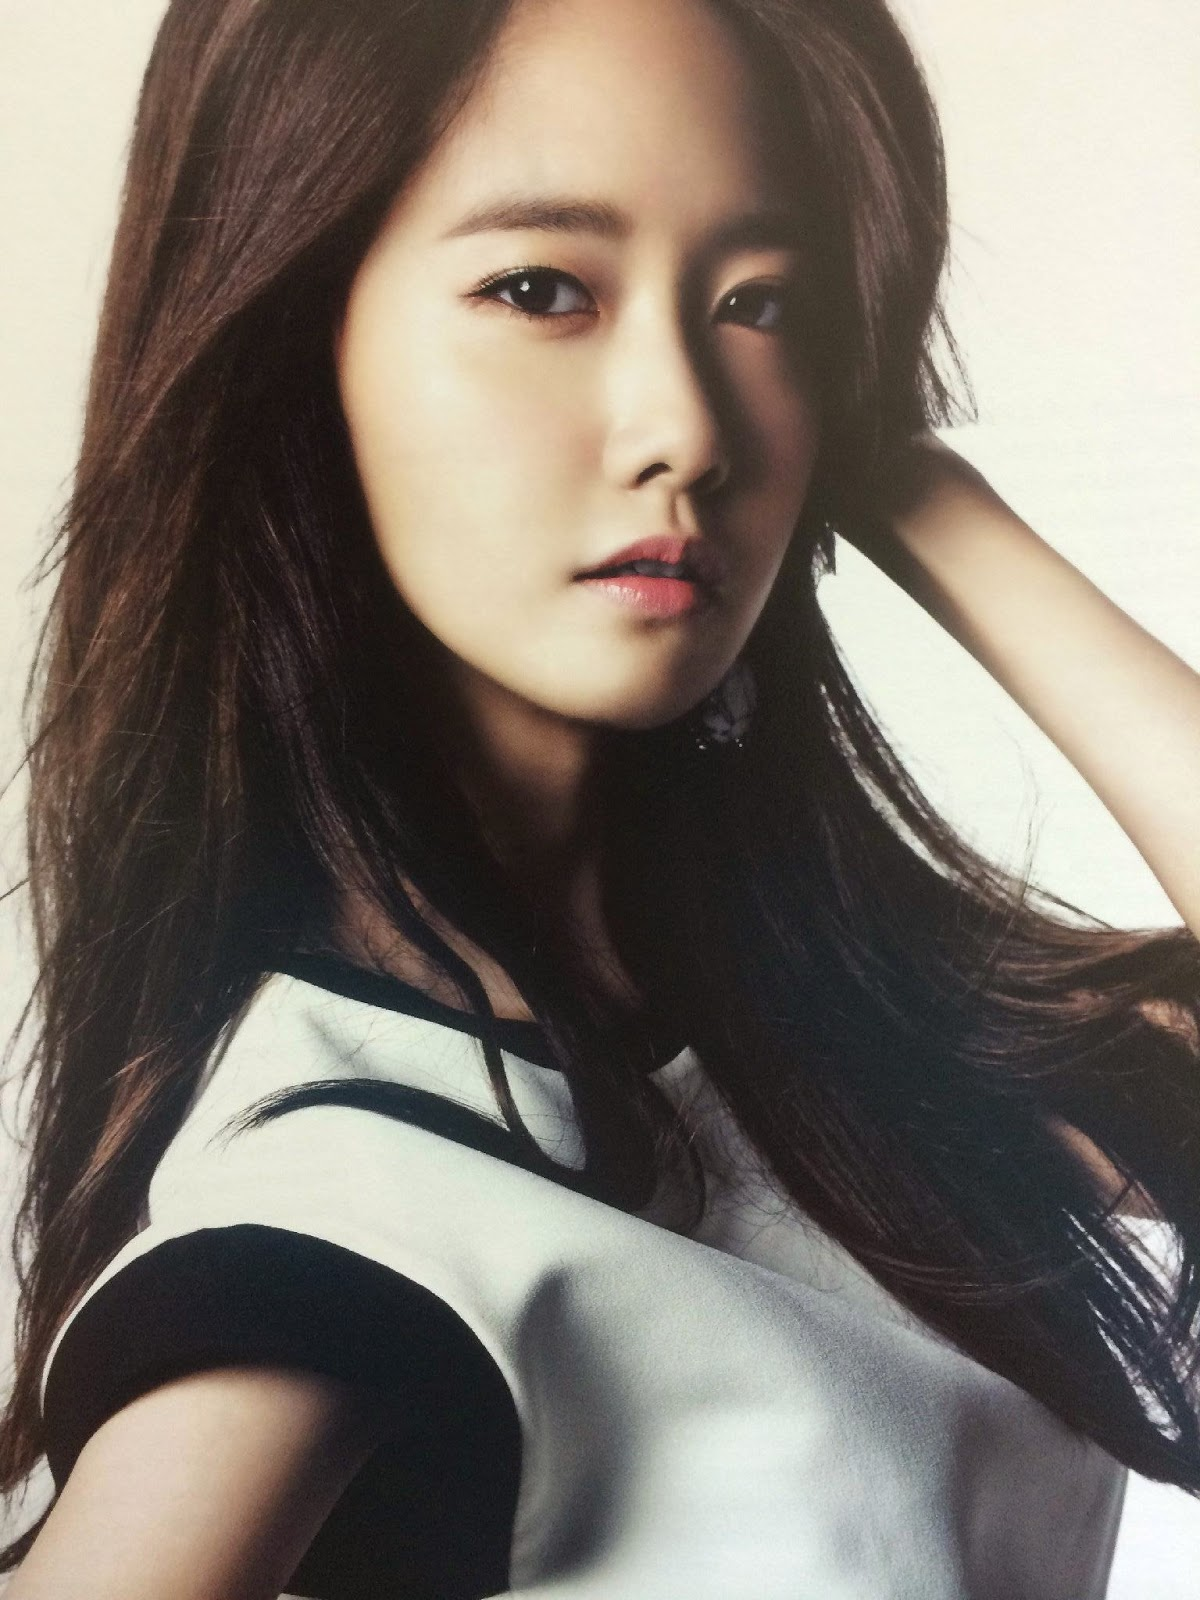 SNSD YoonA (윤아; ユナ) Girls Generation The Best Scan Photos 6